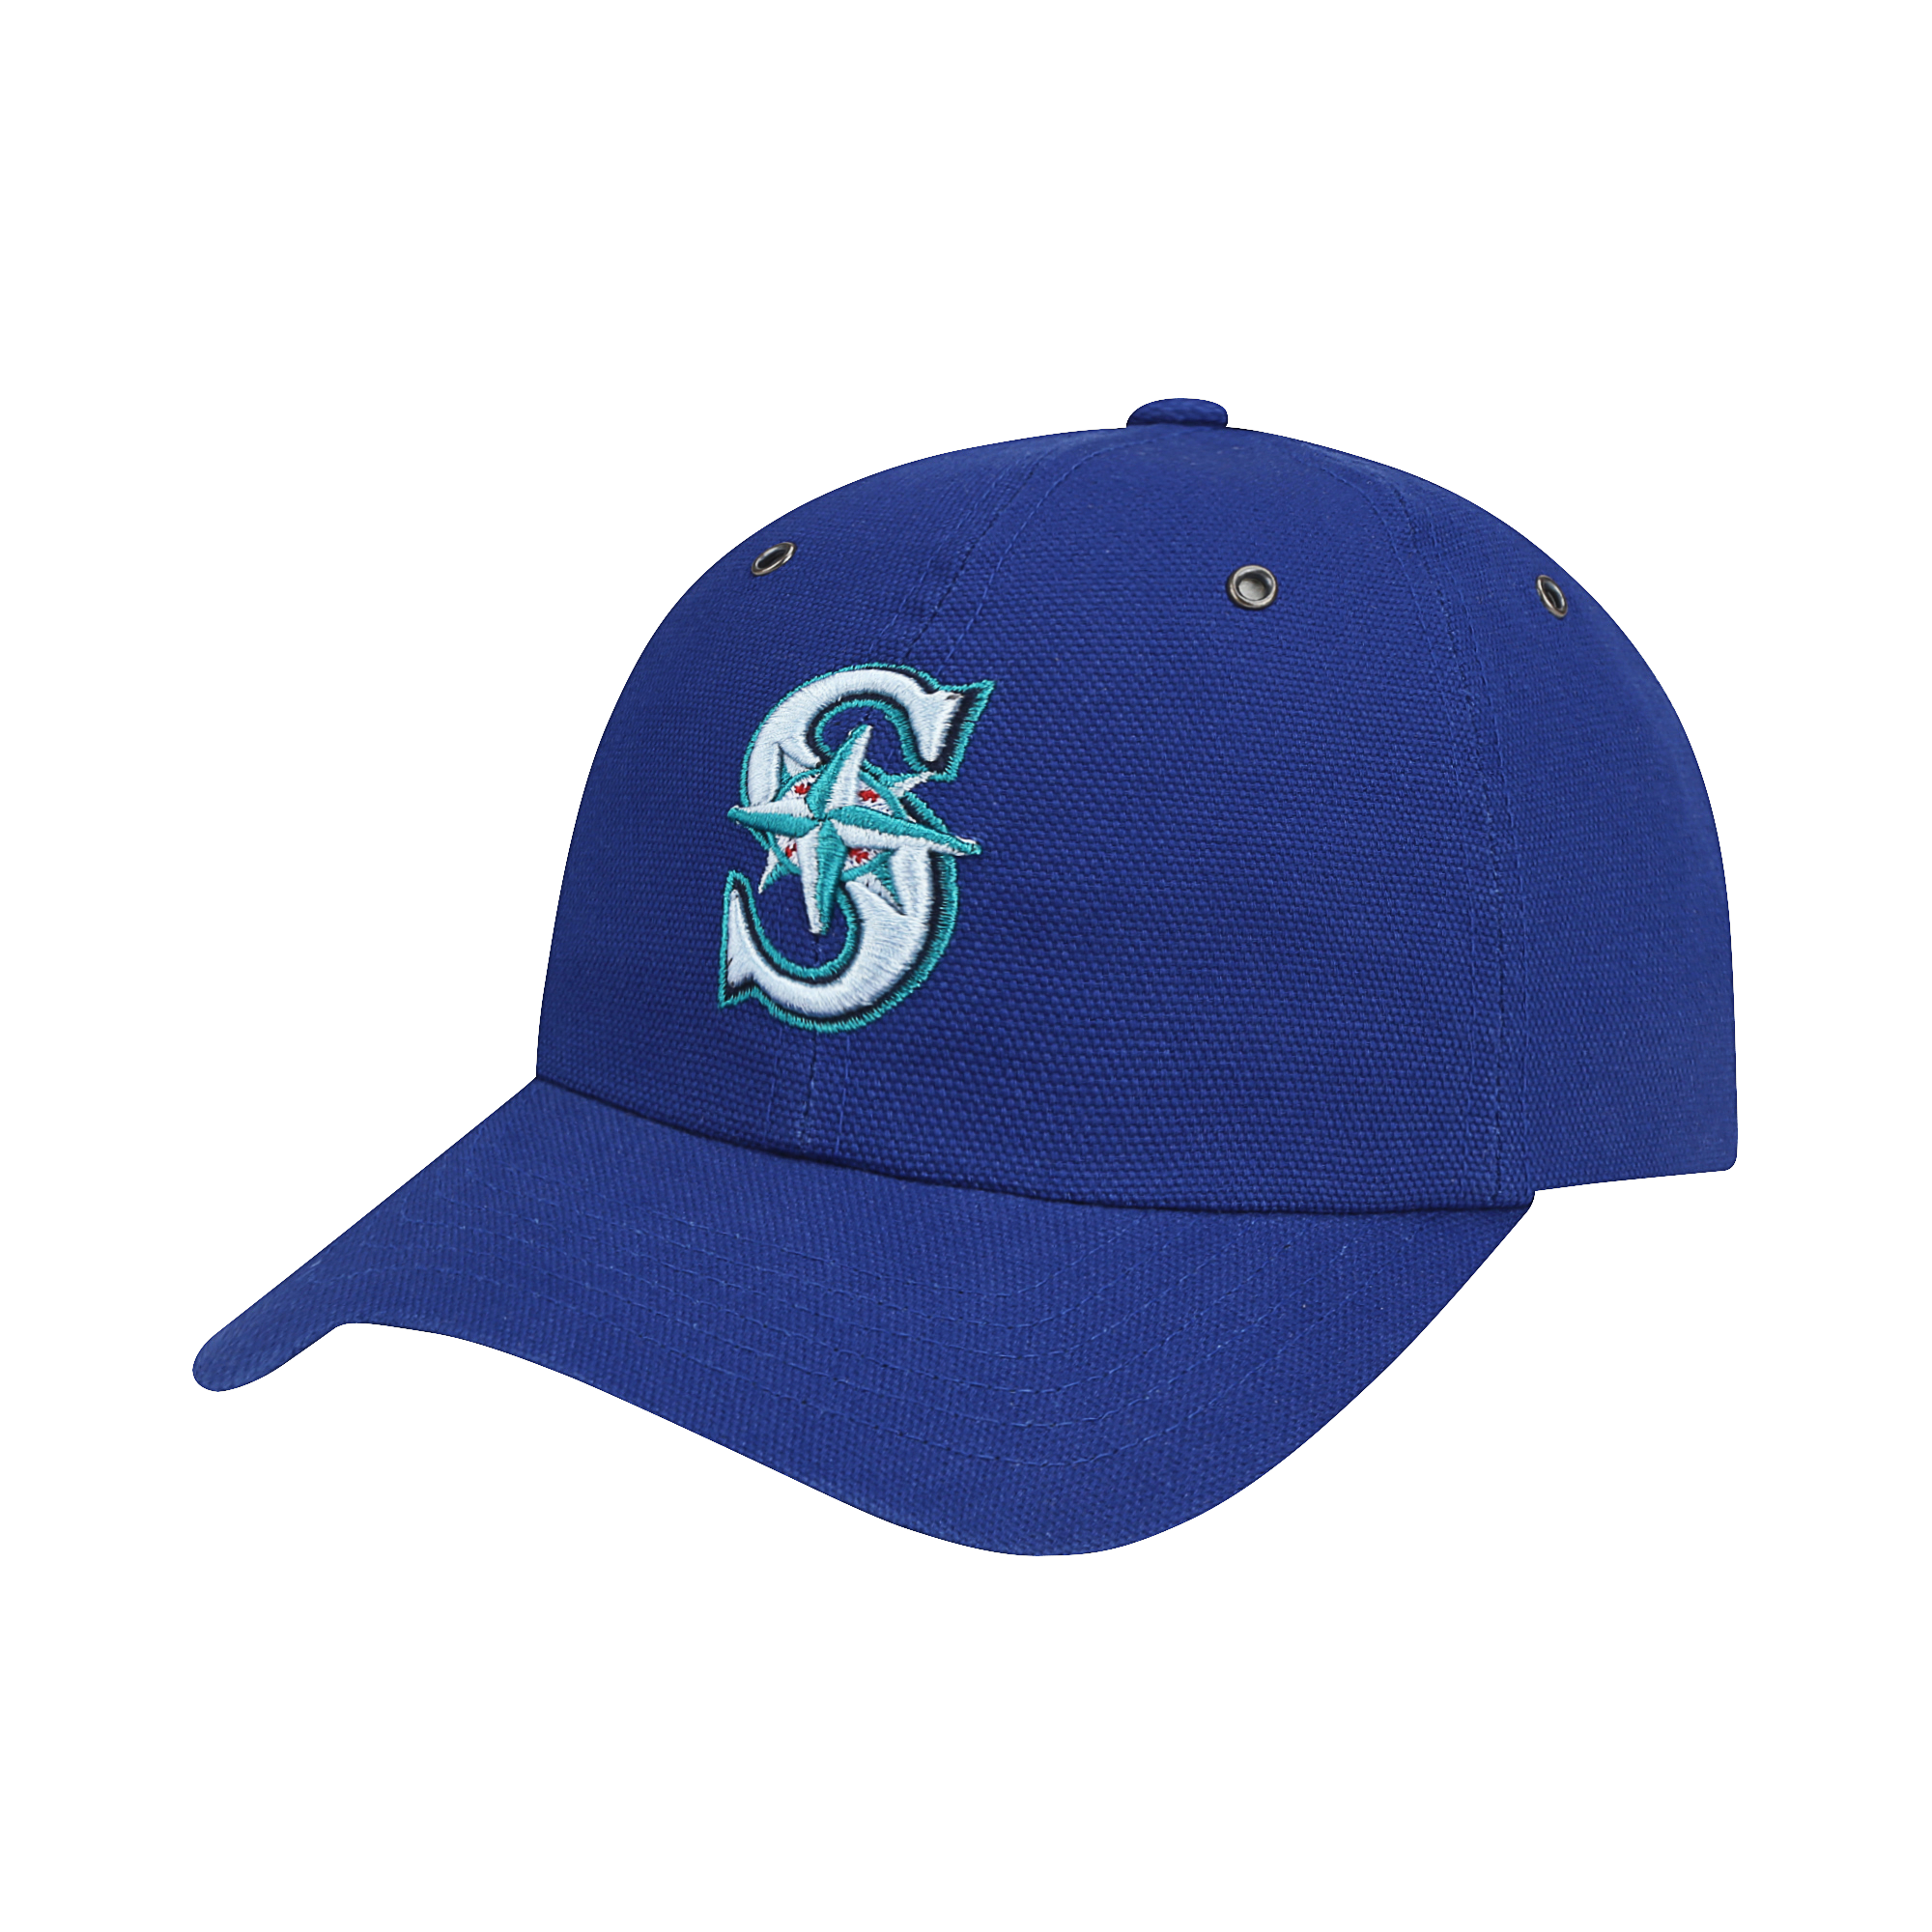 SEATTLE MARINERS VINTAGE OXFORD BALL CAP